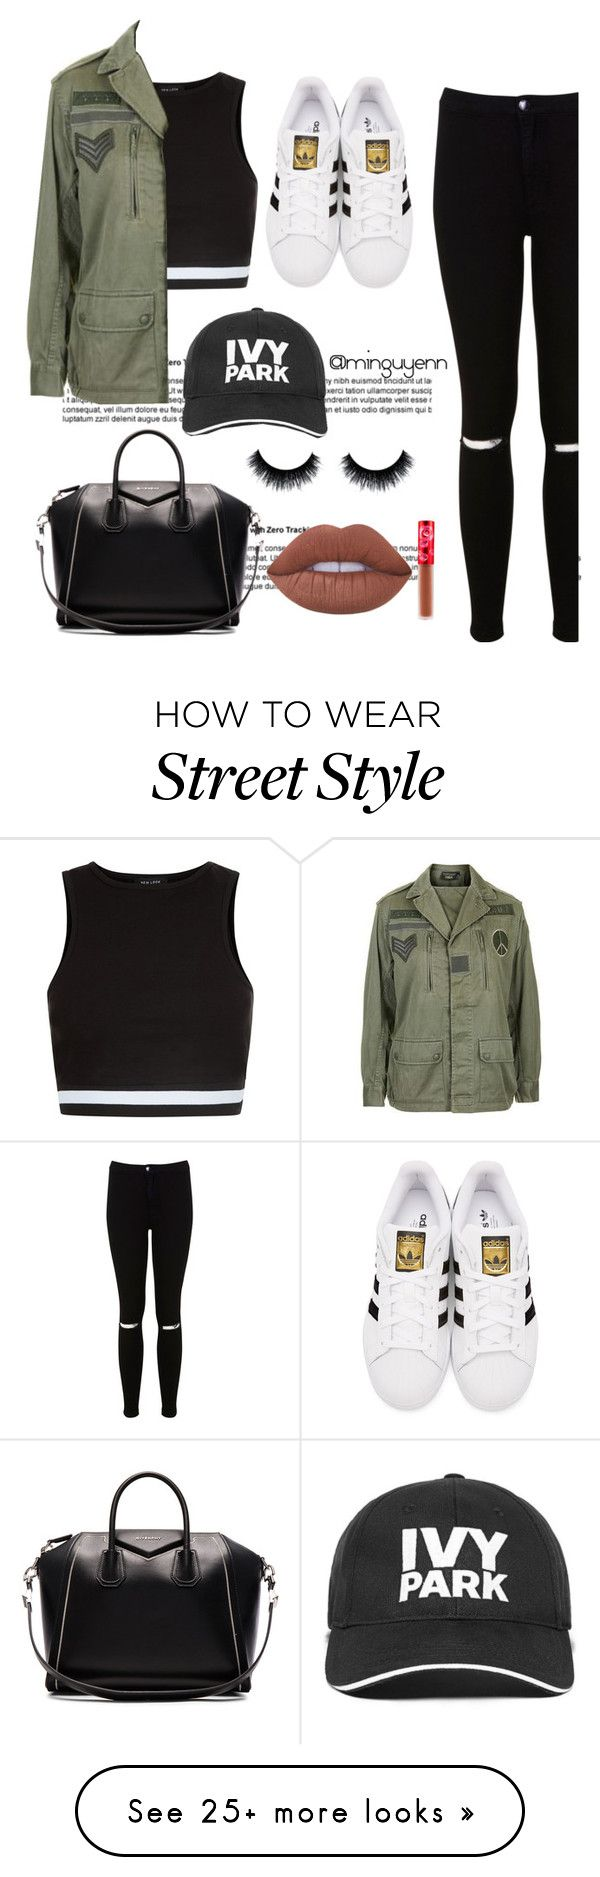 """""""Street style """" by minguyenn on Polyvore featuring New Look, Topshop, Miss Selfridge, adidas Originals, Givenchy, Ivy Park and Lime Crime"""